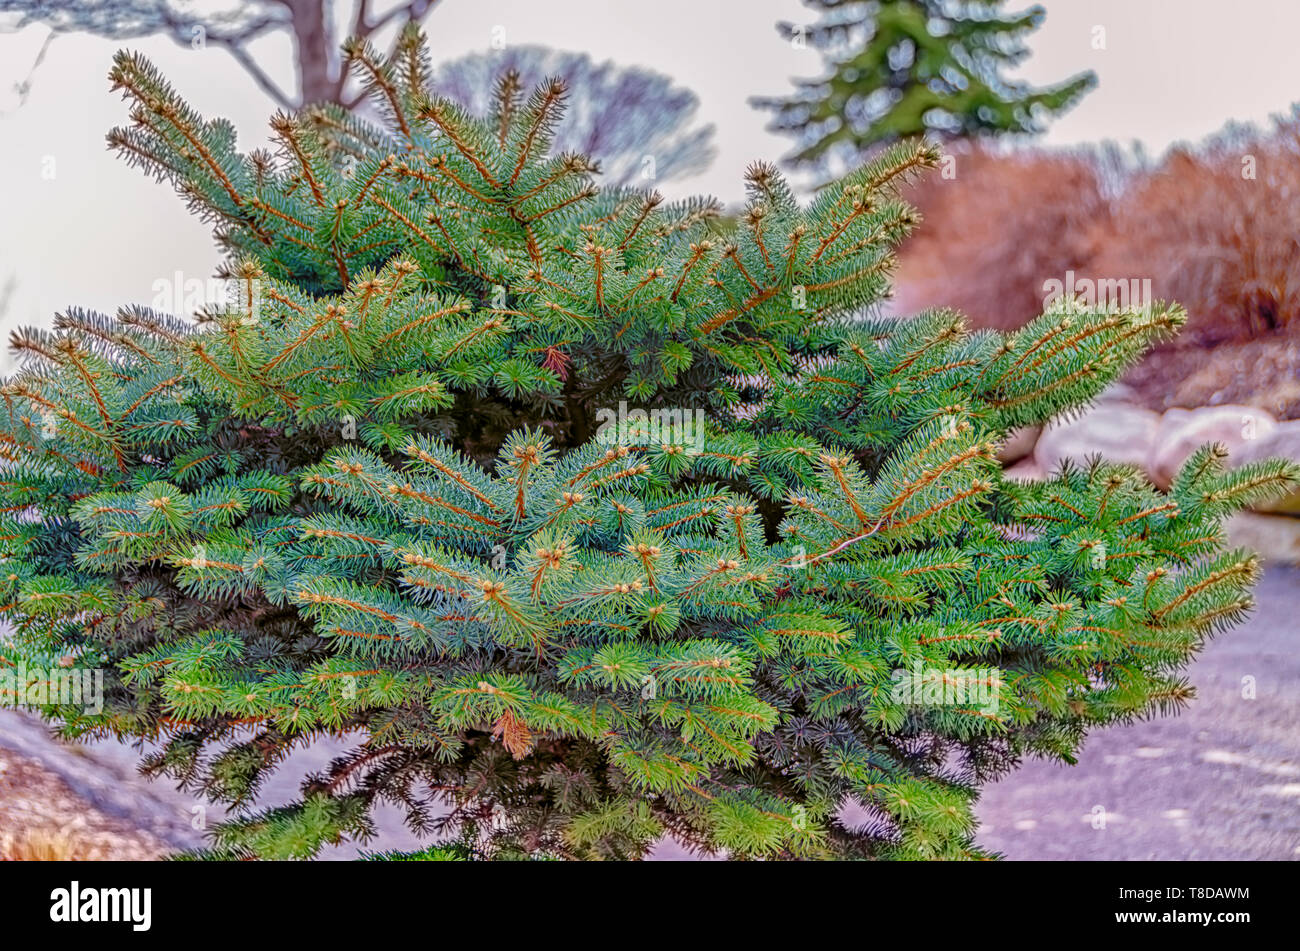 A young and healthy pine tree in a garden of a home. - Stock Image